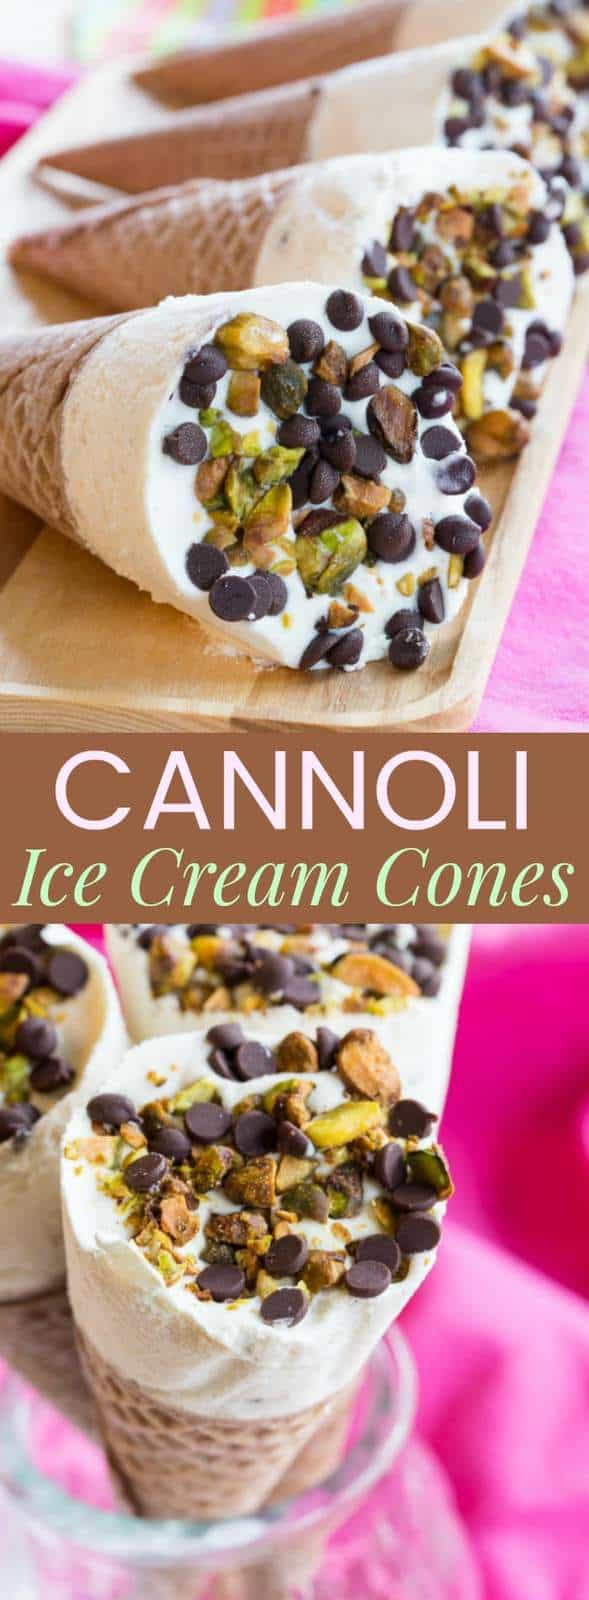 Cannoli Ice Cream Cones - fill sugar cones with a no-churn cannoli ice cream made with ricotta cheese and sprinkle with chocolate chips and pistachios for a fun frozen twist on the classic Italian dessert inspired by Drumsticks cones. You can also use gluten free cones.